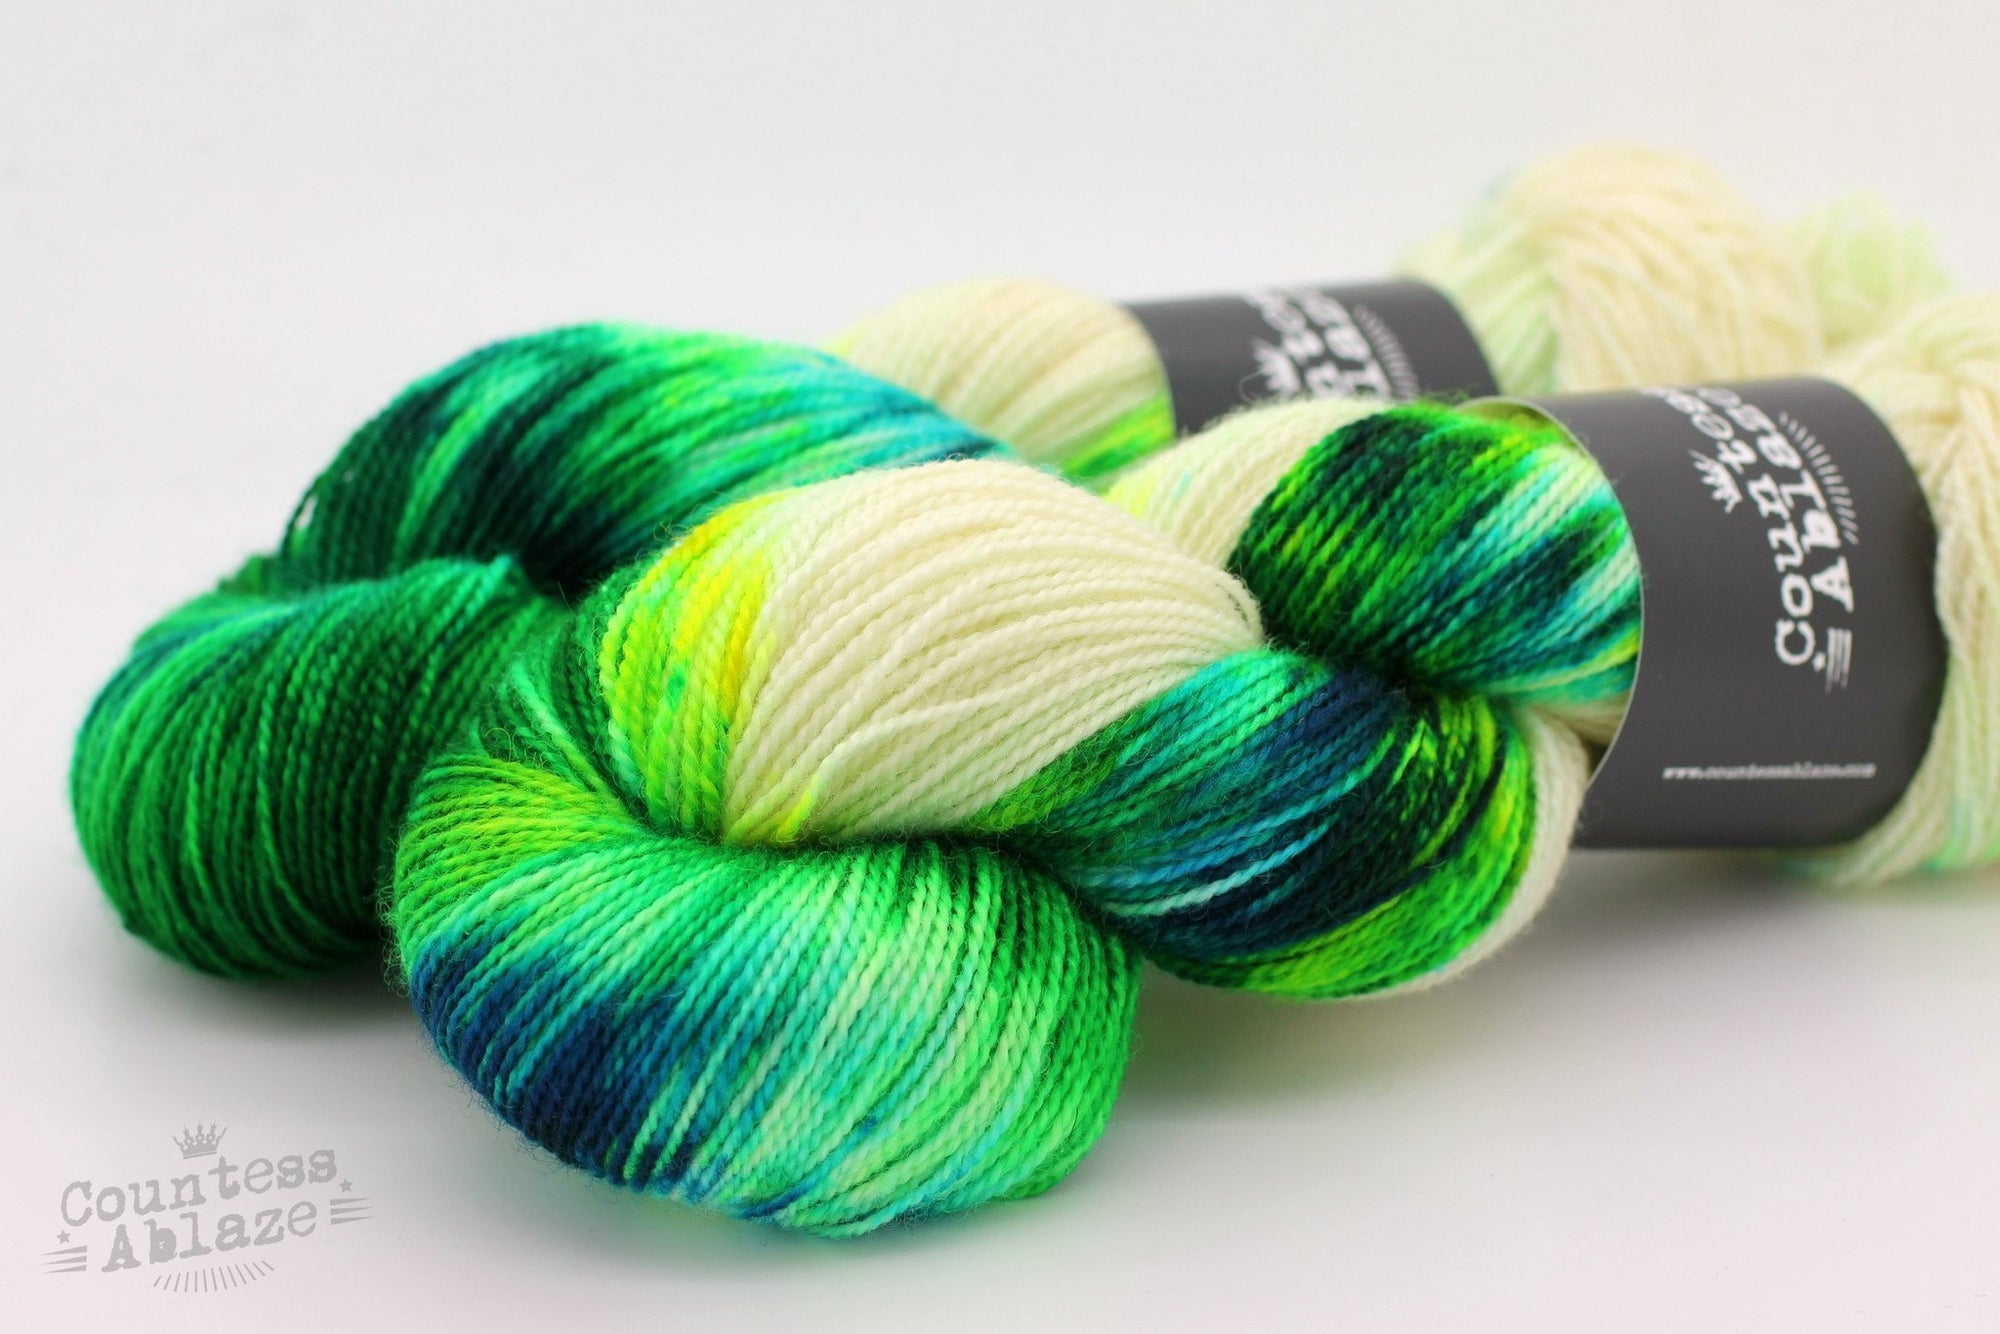 Colourway : Toxicity | Countess Ablaze